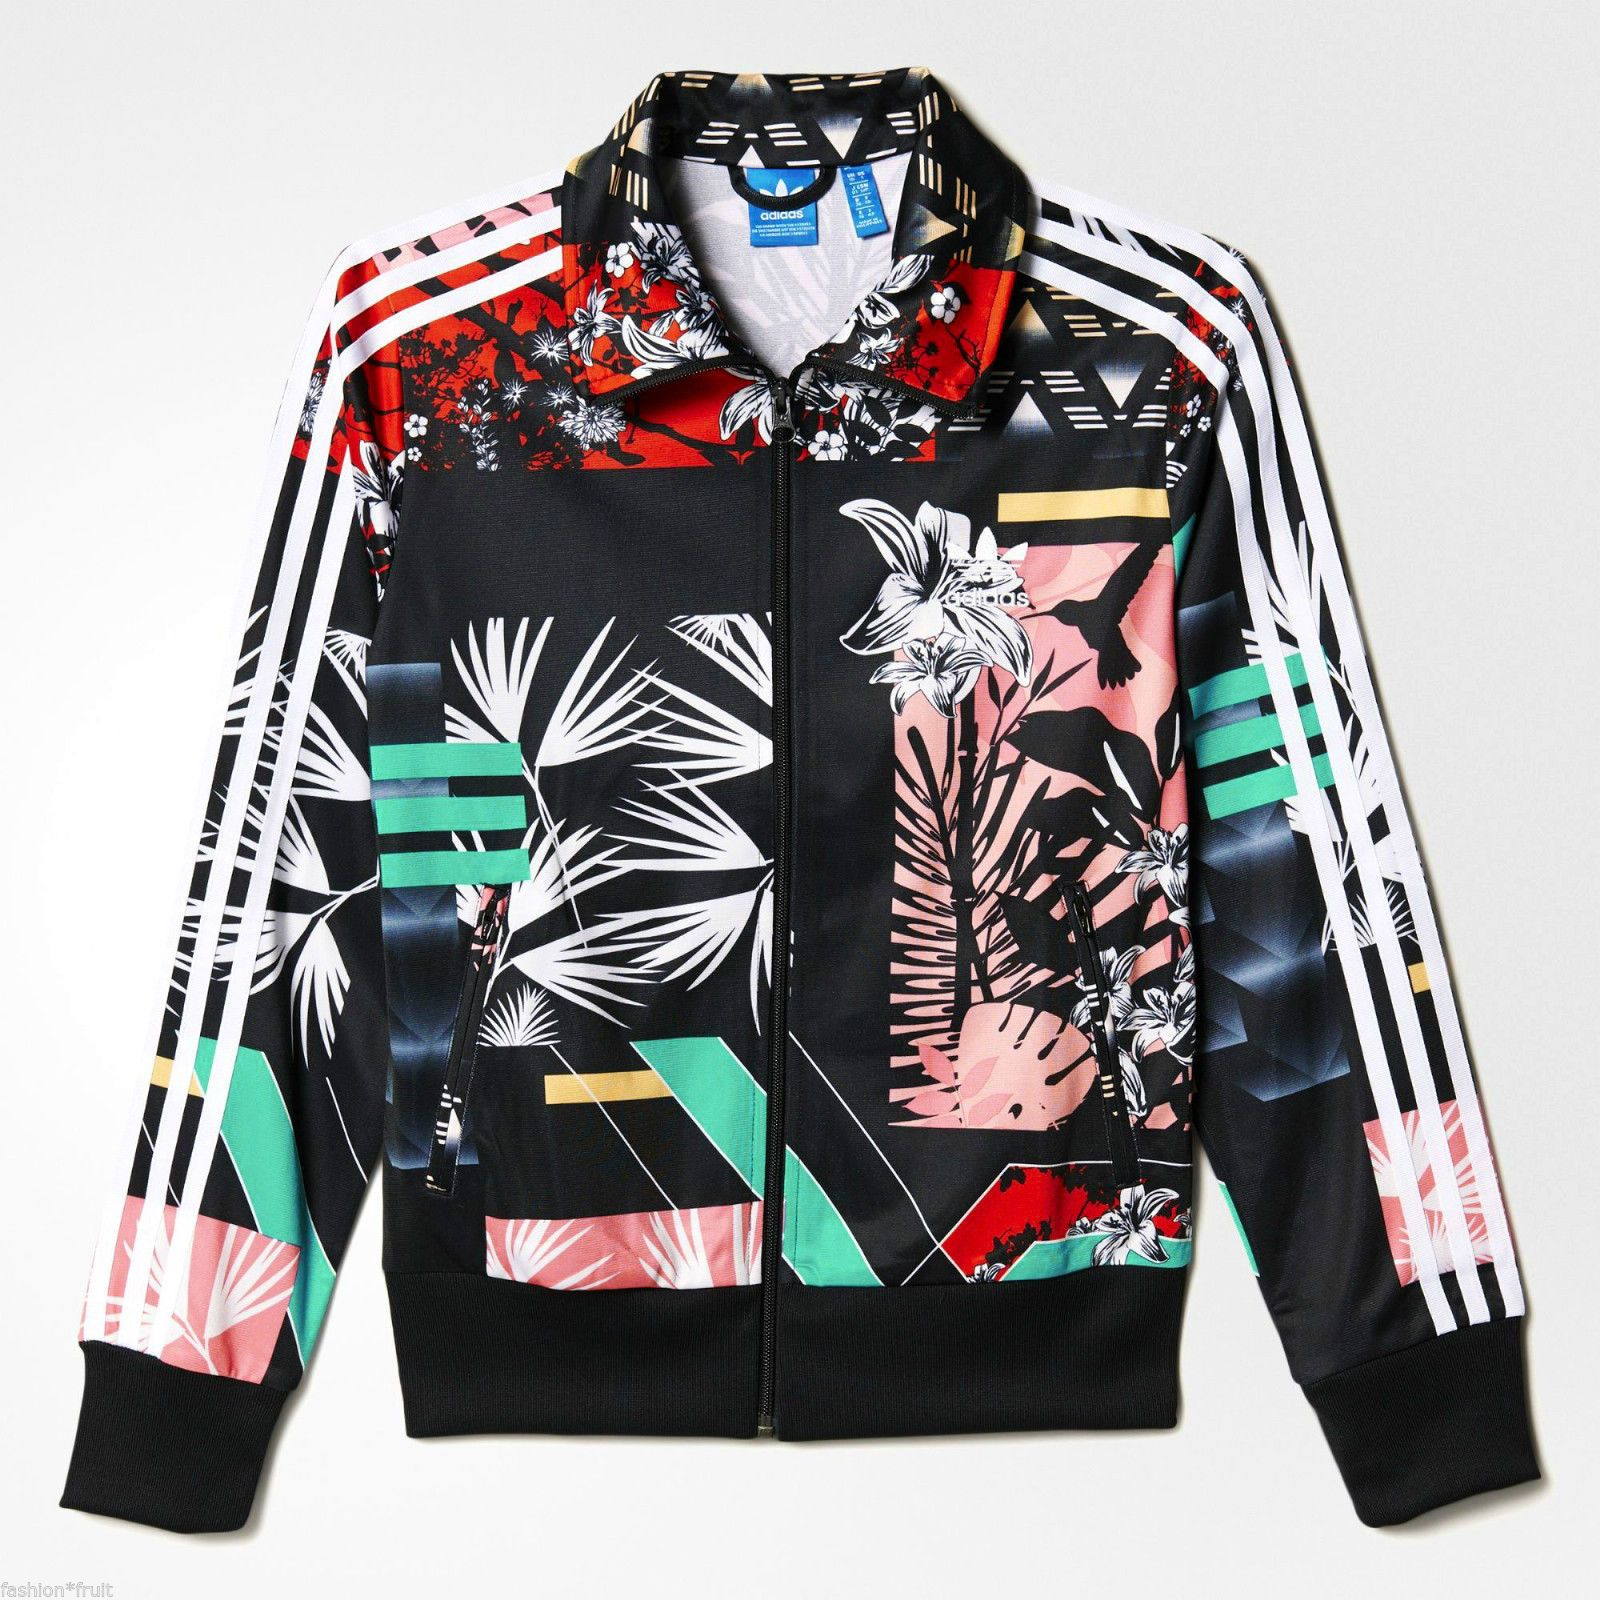 06c7f6b65d Adidas Originals Women Floral Football Firebird Soccer Track Top Jacket s M  L